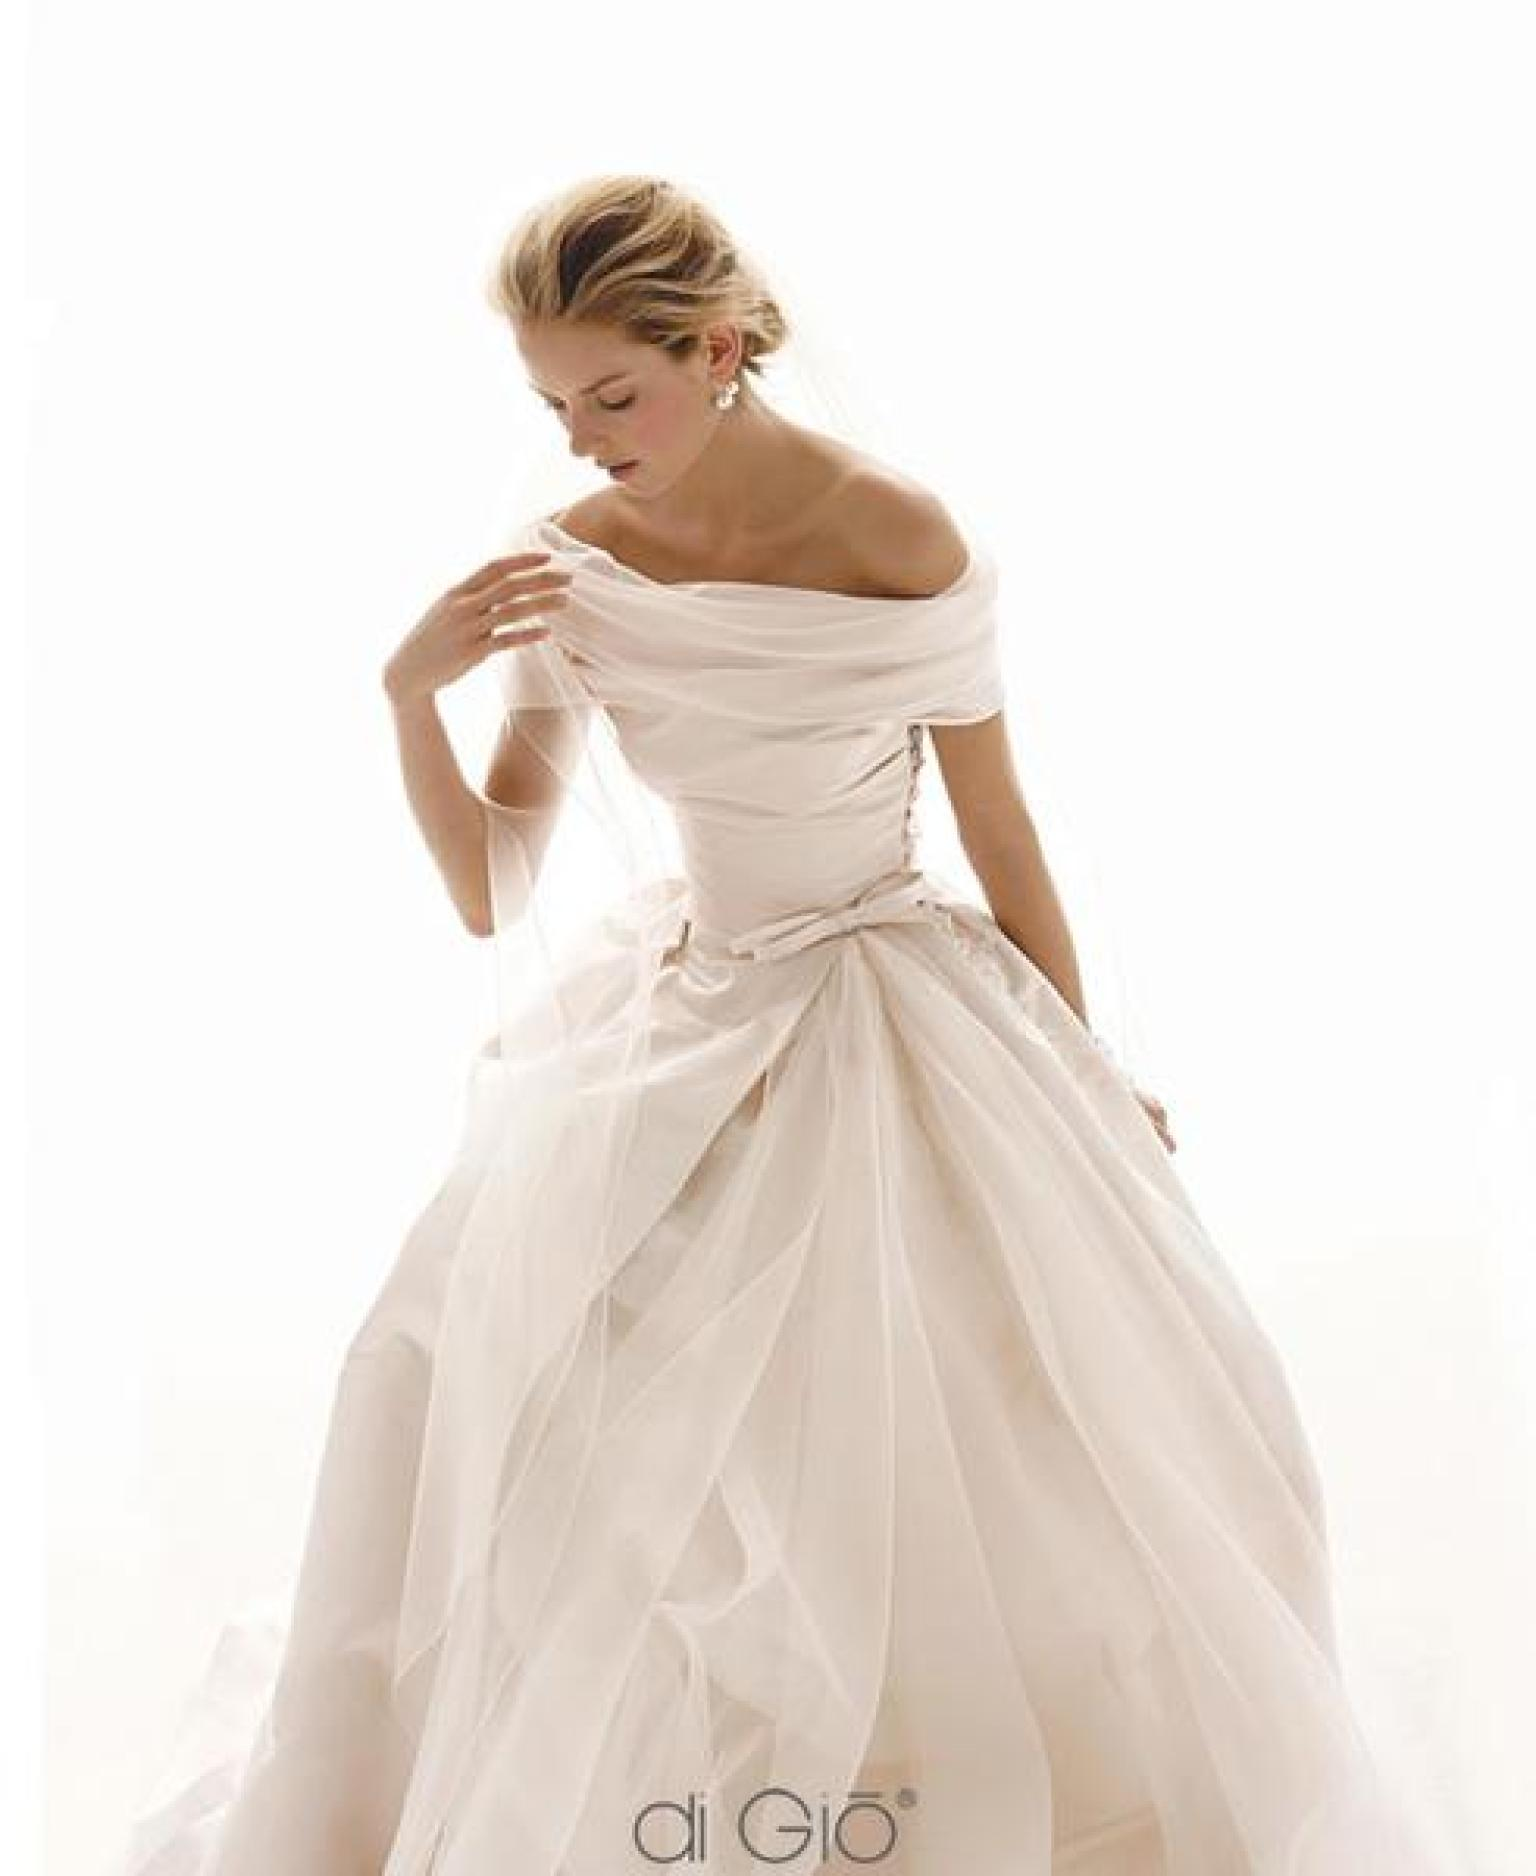 Elegance Of   Wedding Dresses : Off the shoulder wedding dresses year s most sensual